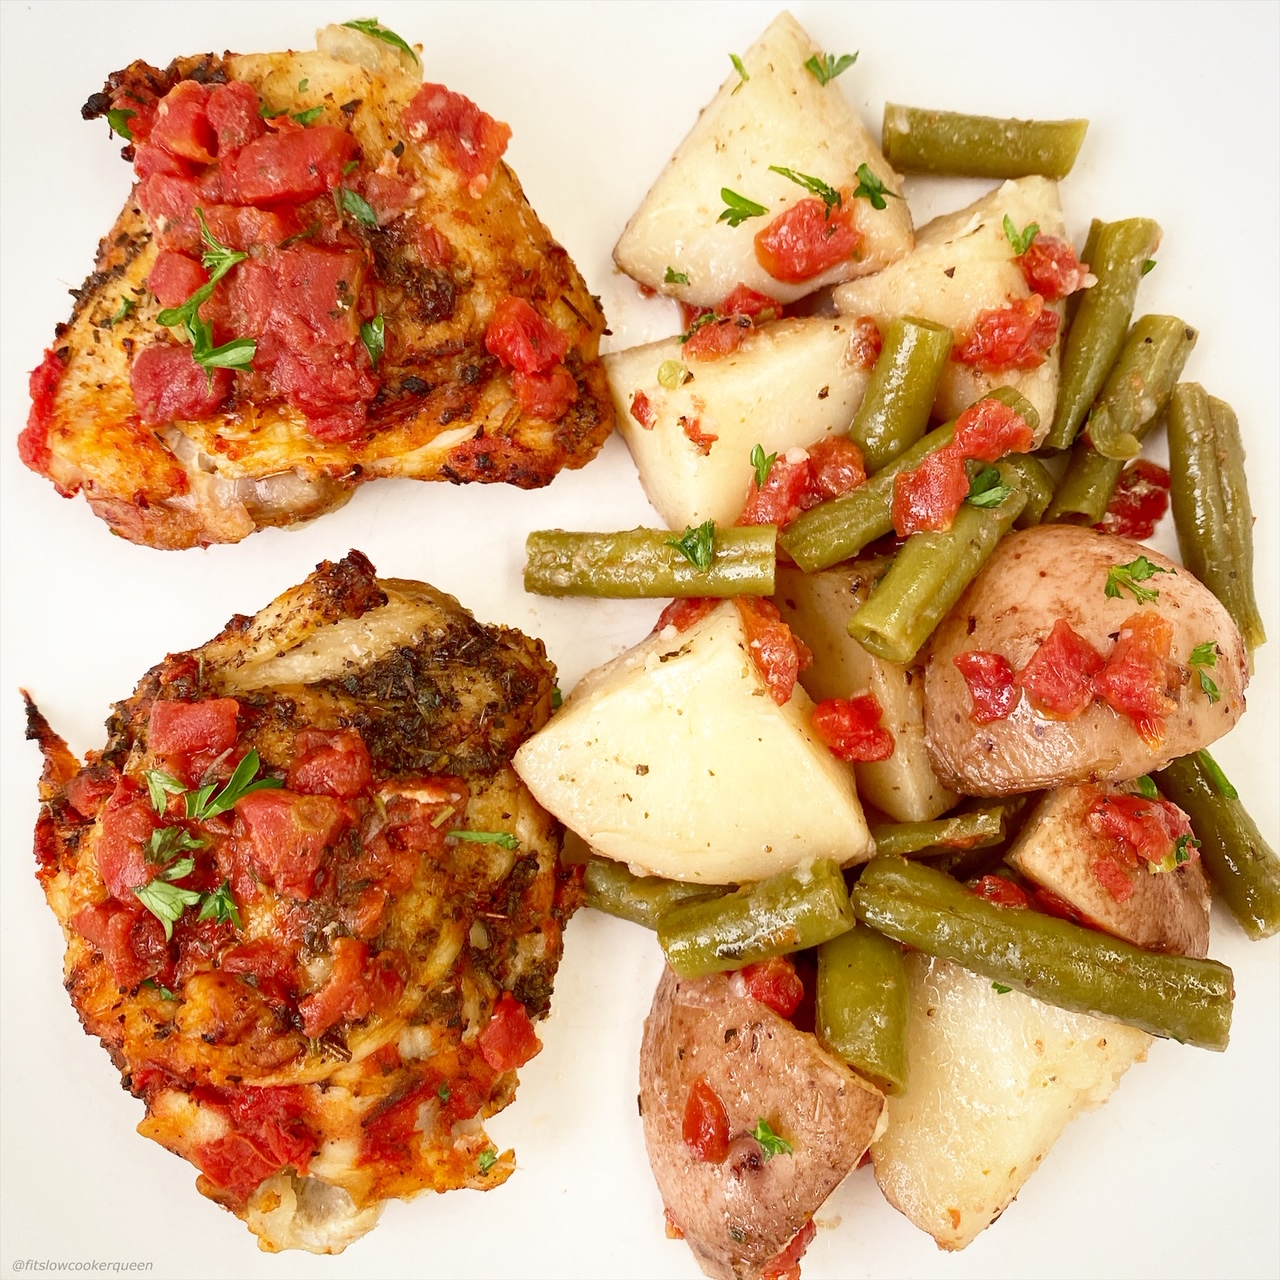 close up of 2 chicken thighs & a few scoops of potatoes & green beans.